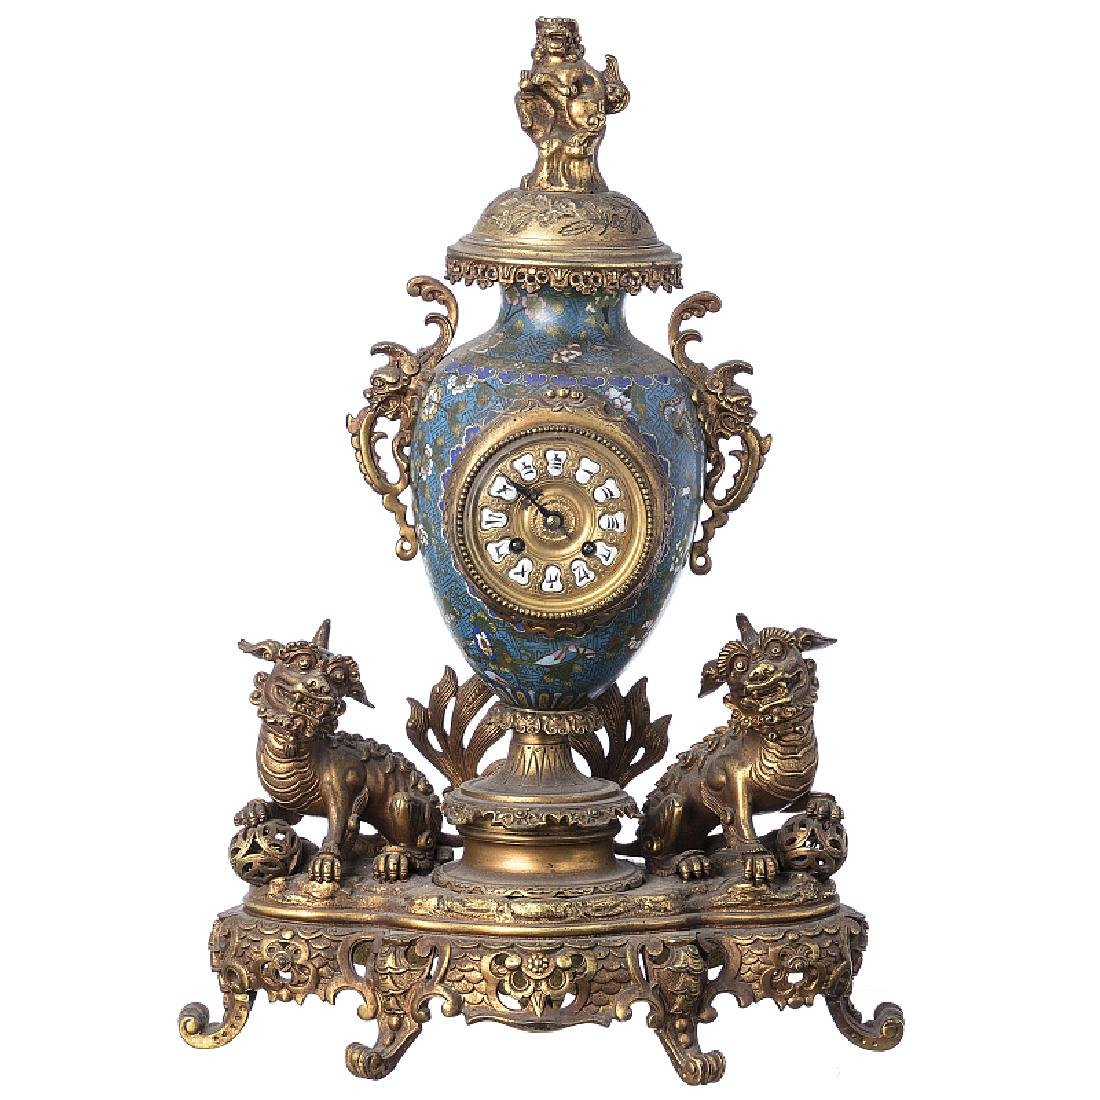 Chinese cloisonne table clock with garniture